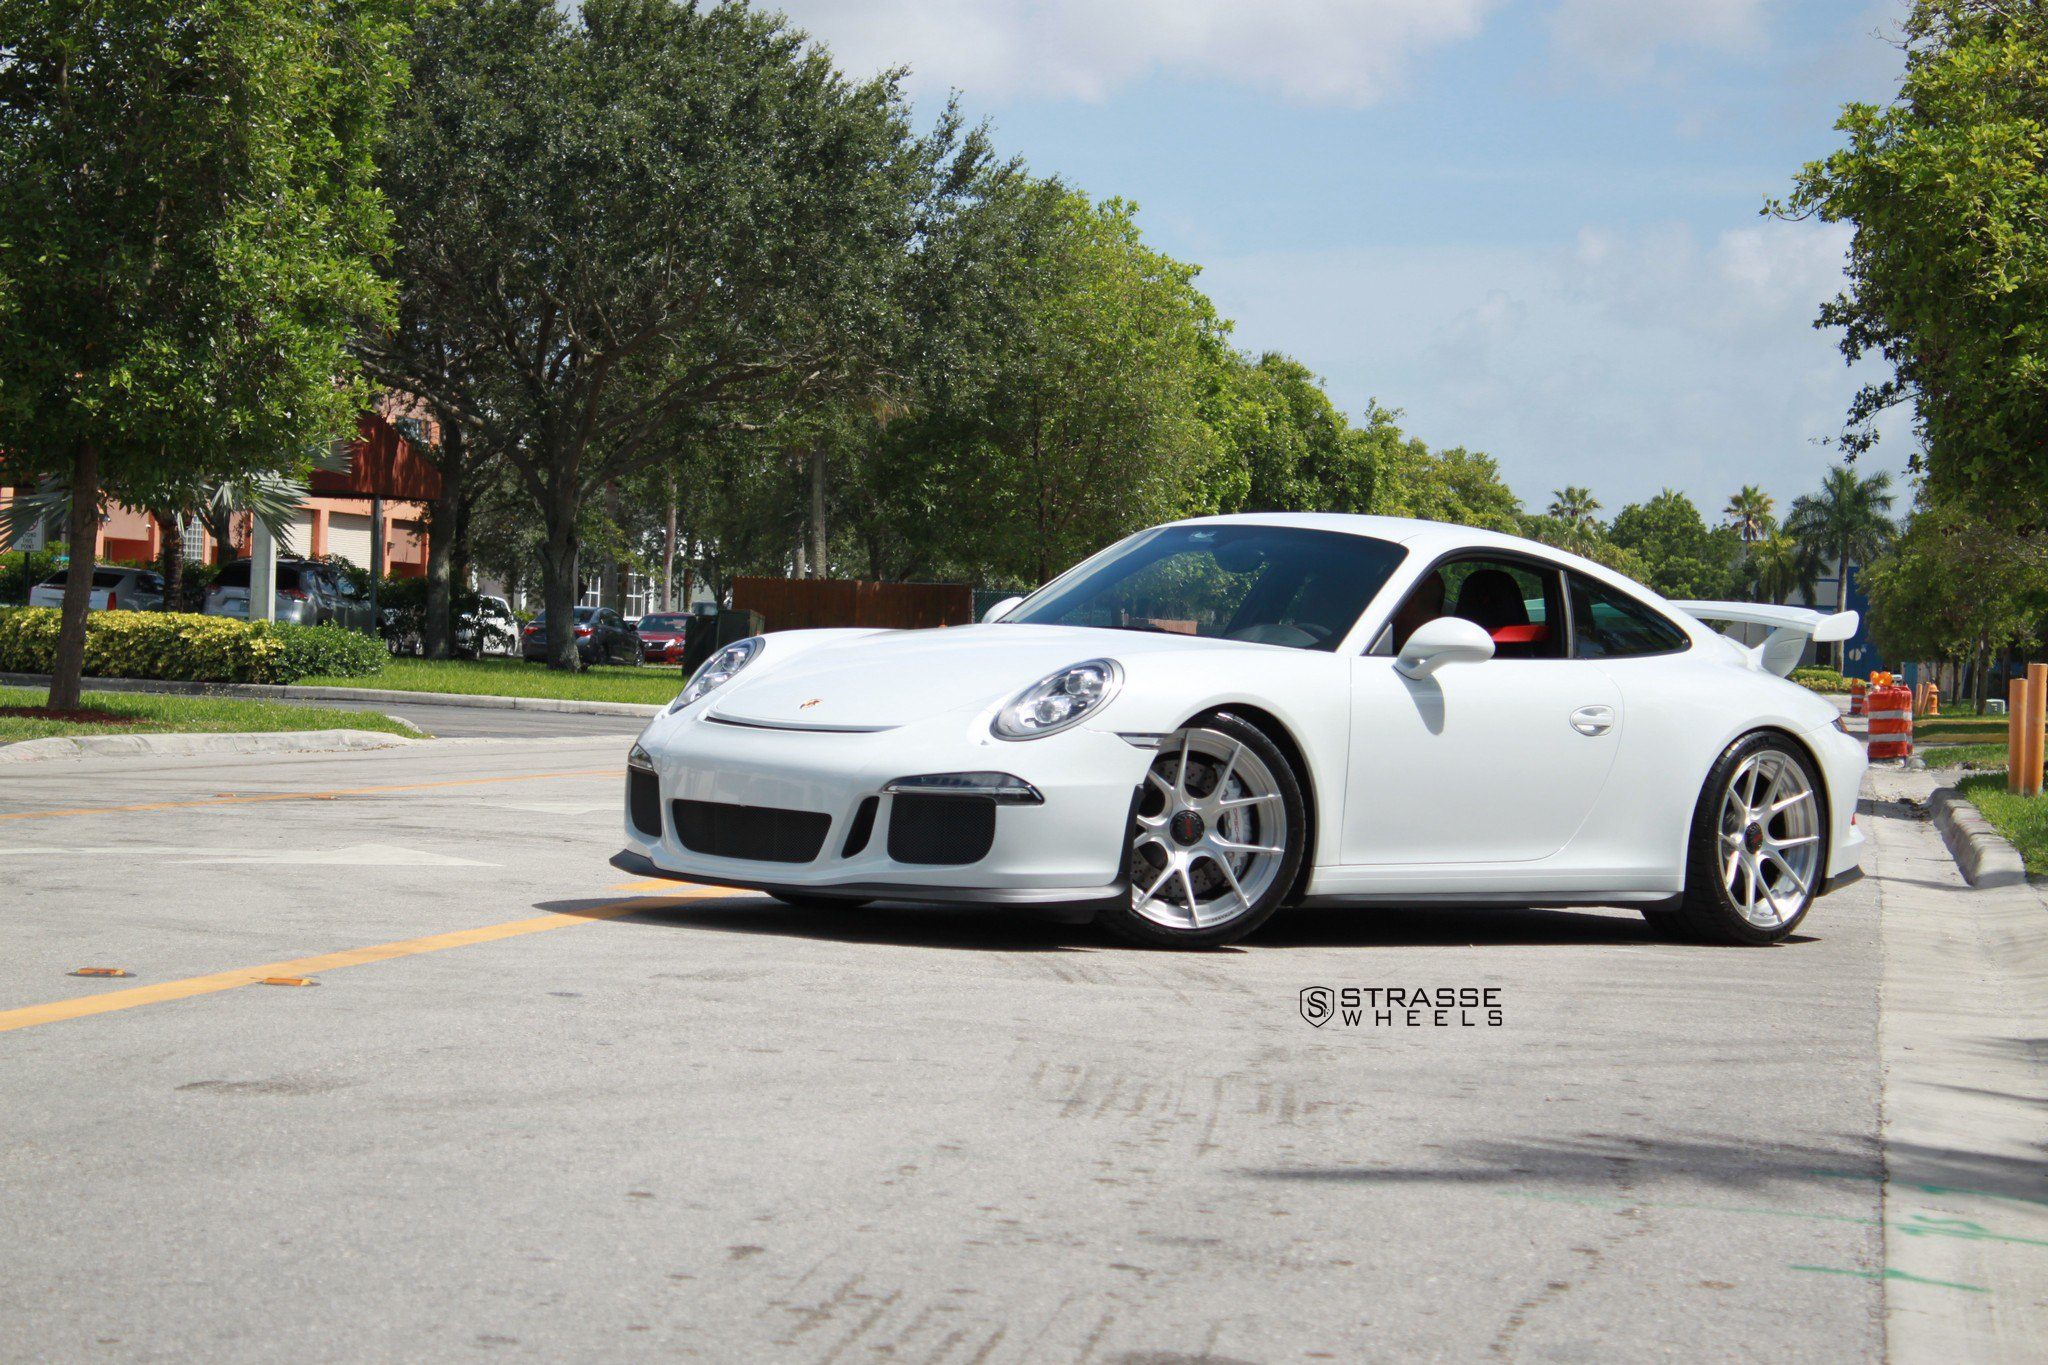 When White Porsche 911 Looks Bossy Sitting On Brushed